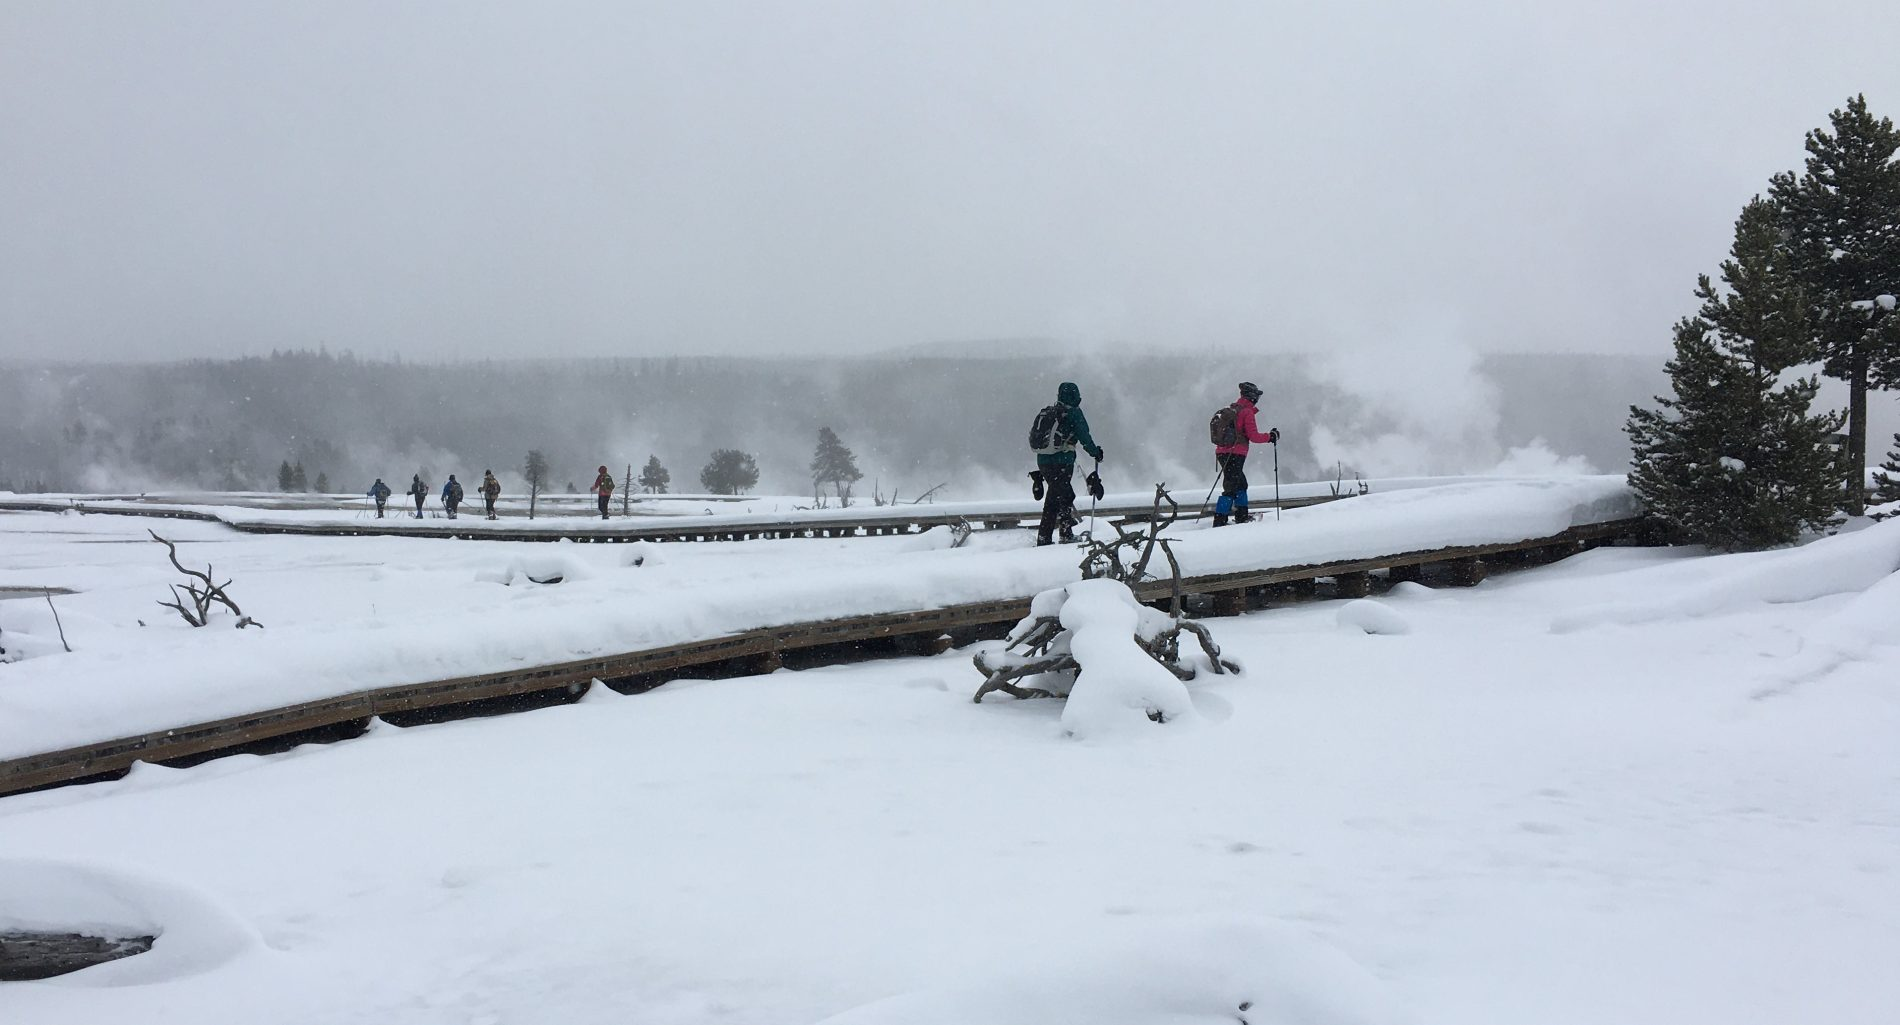 Biscuit Basin boardwalk on snowshoes in Yellowstone National Park